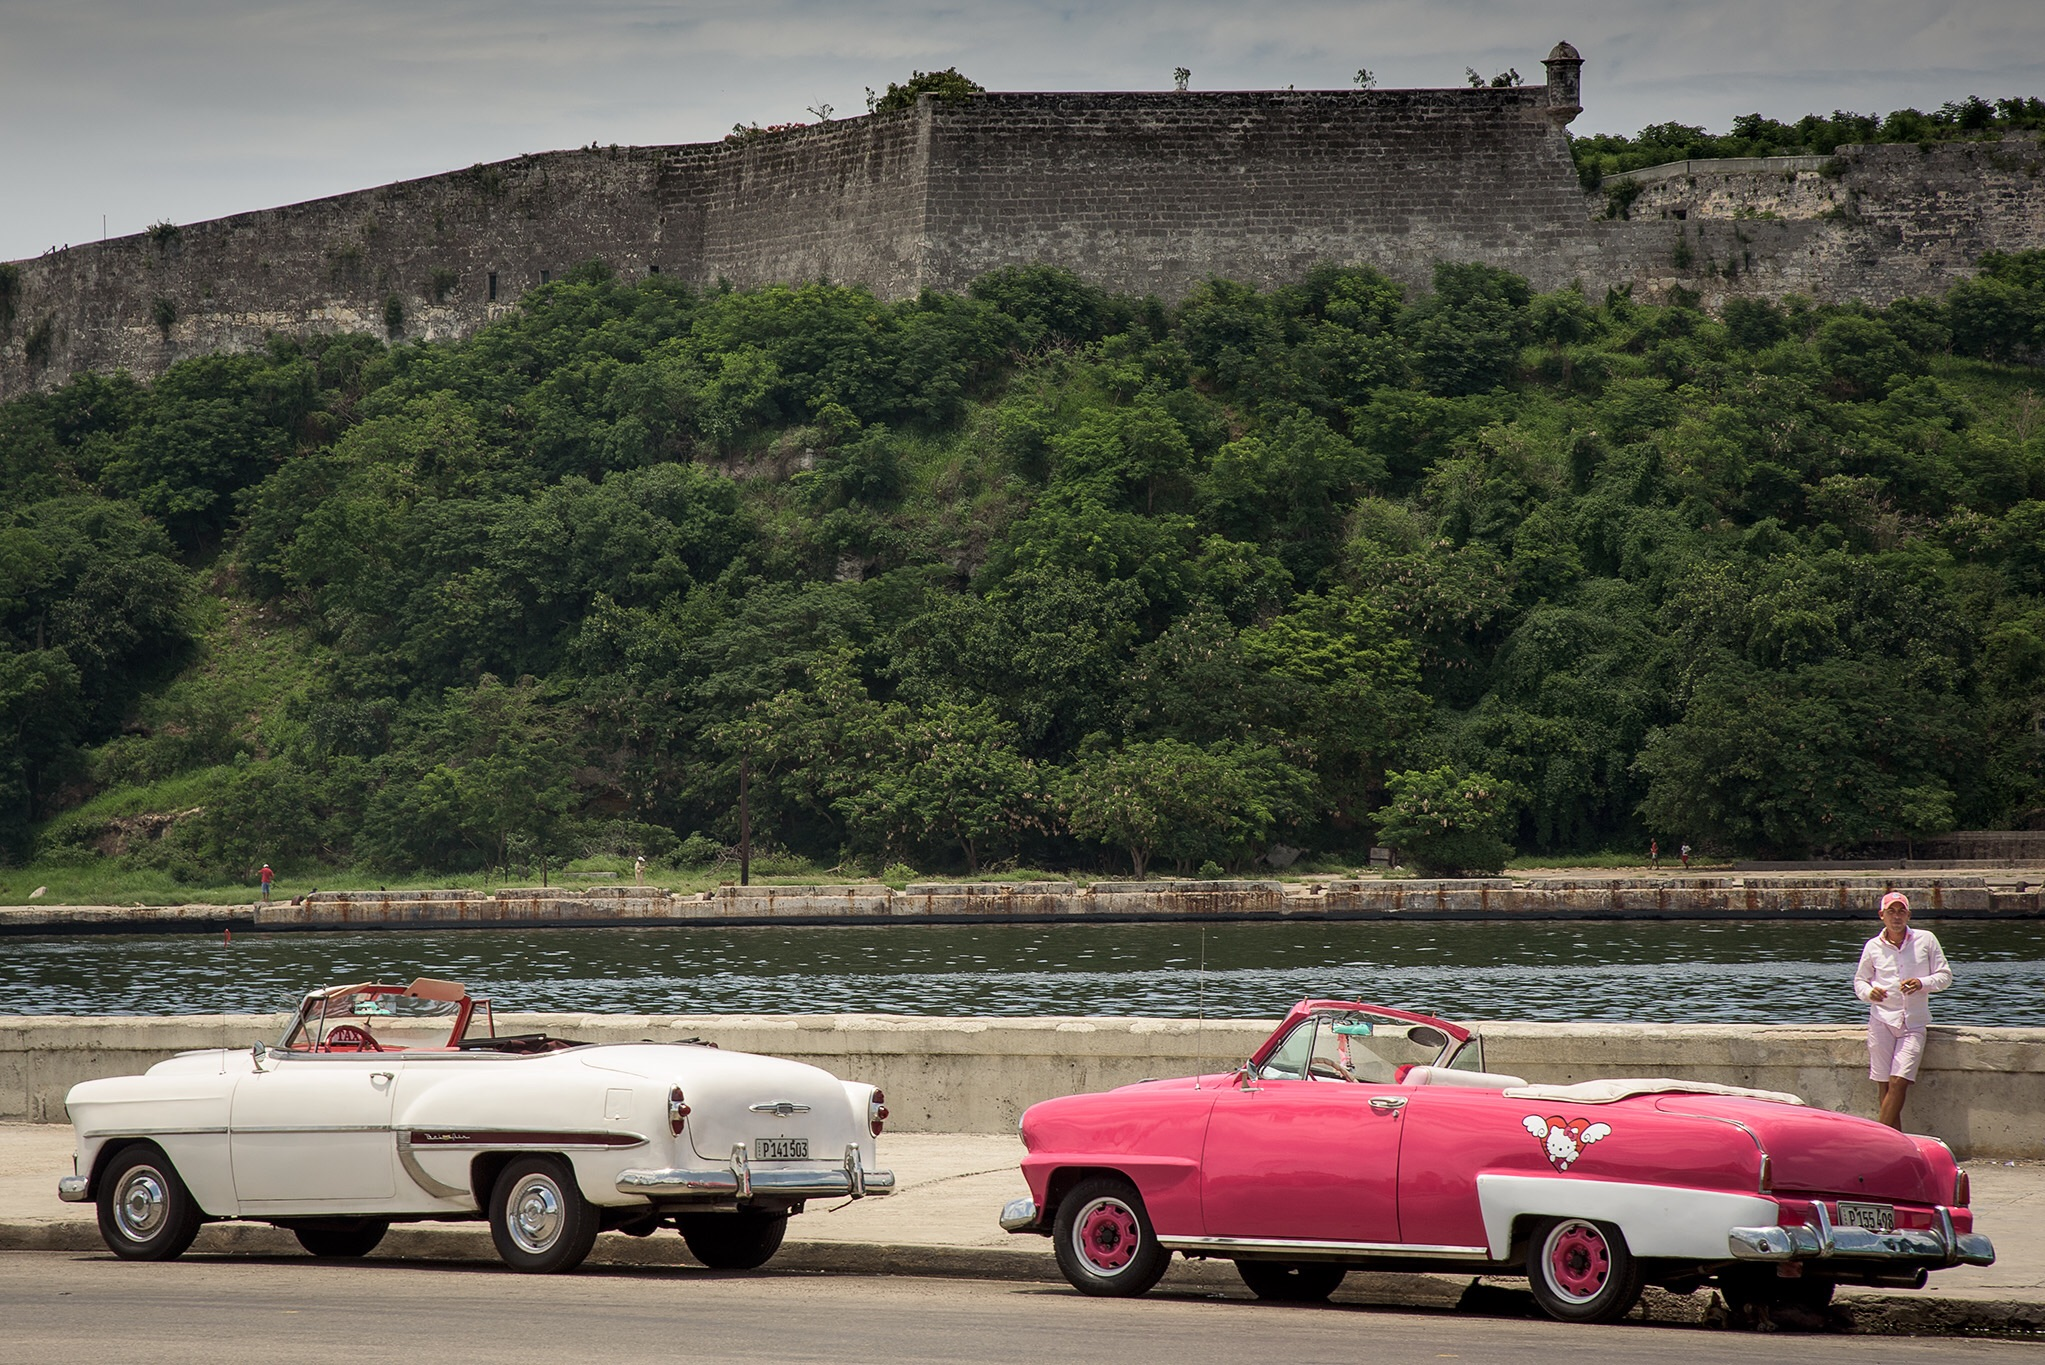 Some old cars along the Malecon in front of the Old Fortress.